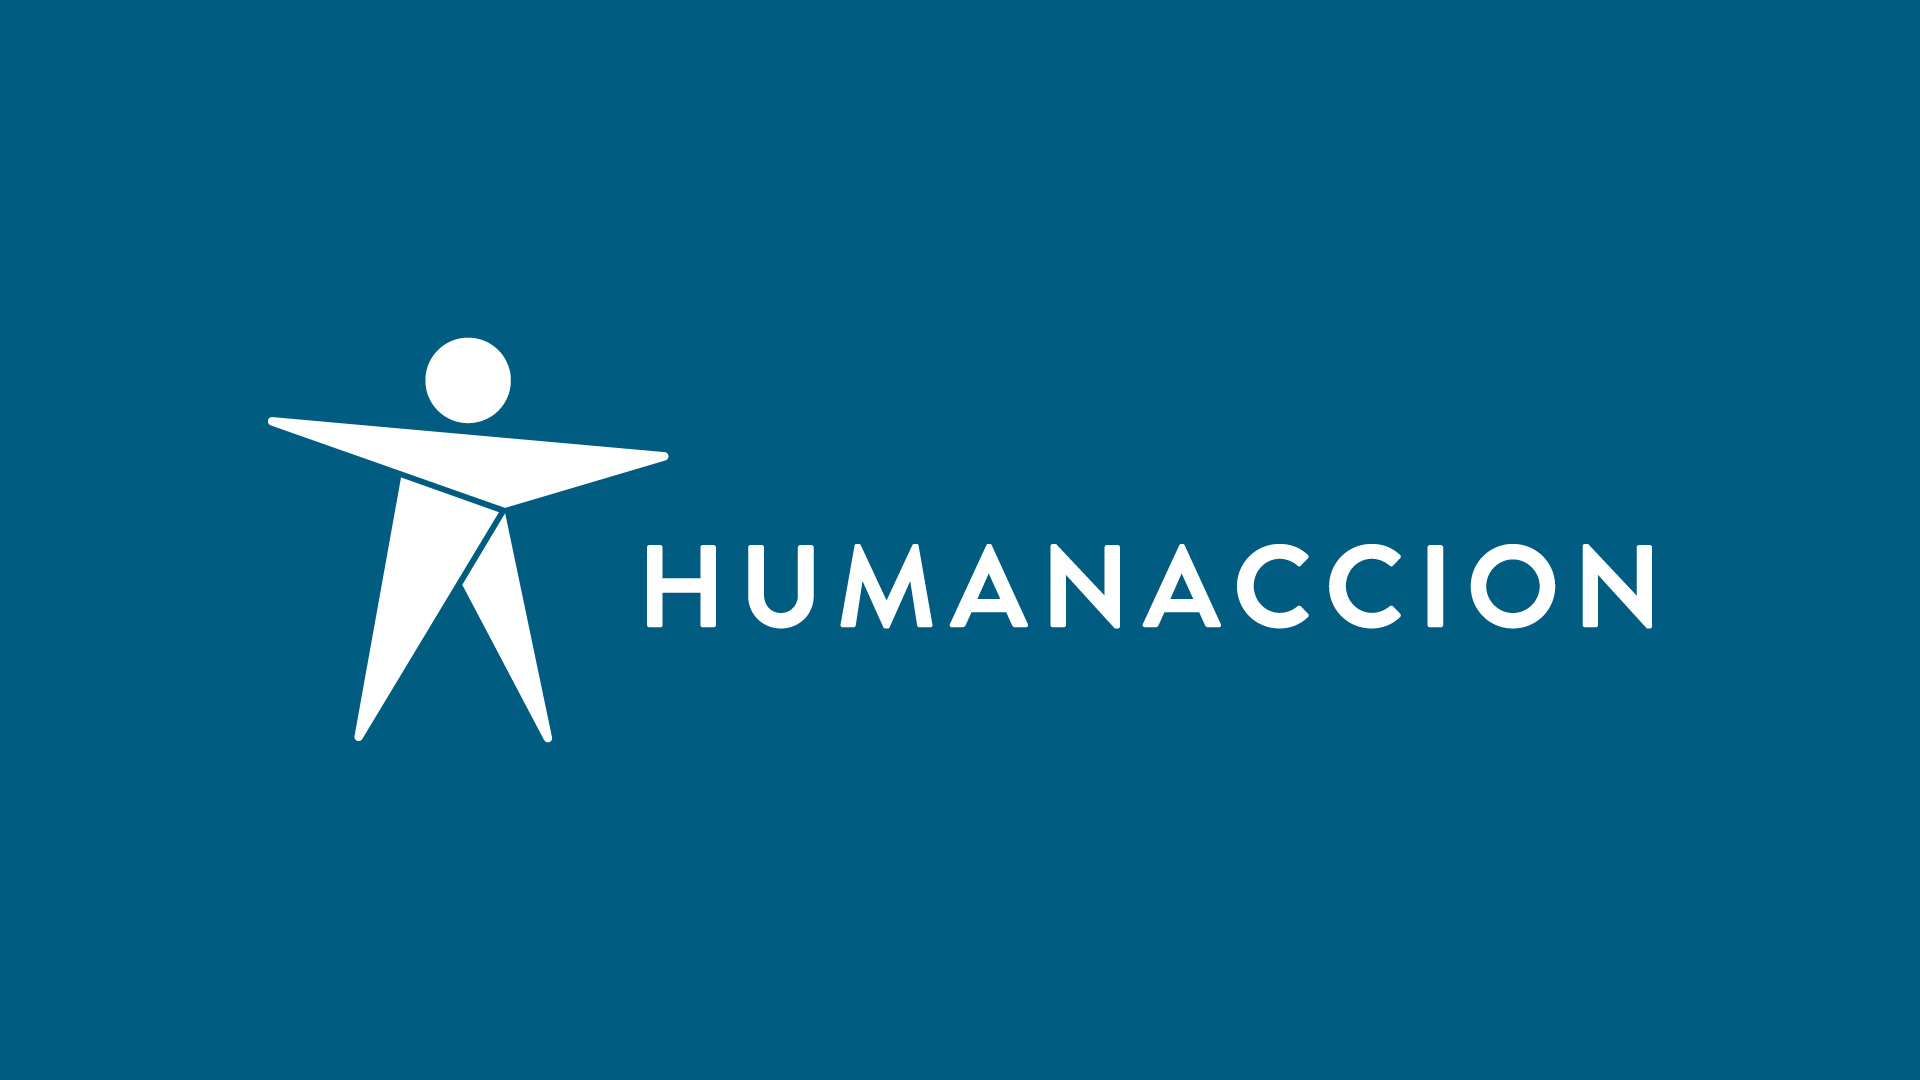 Humanaccion